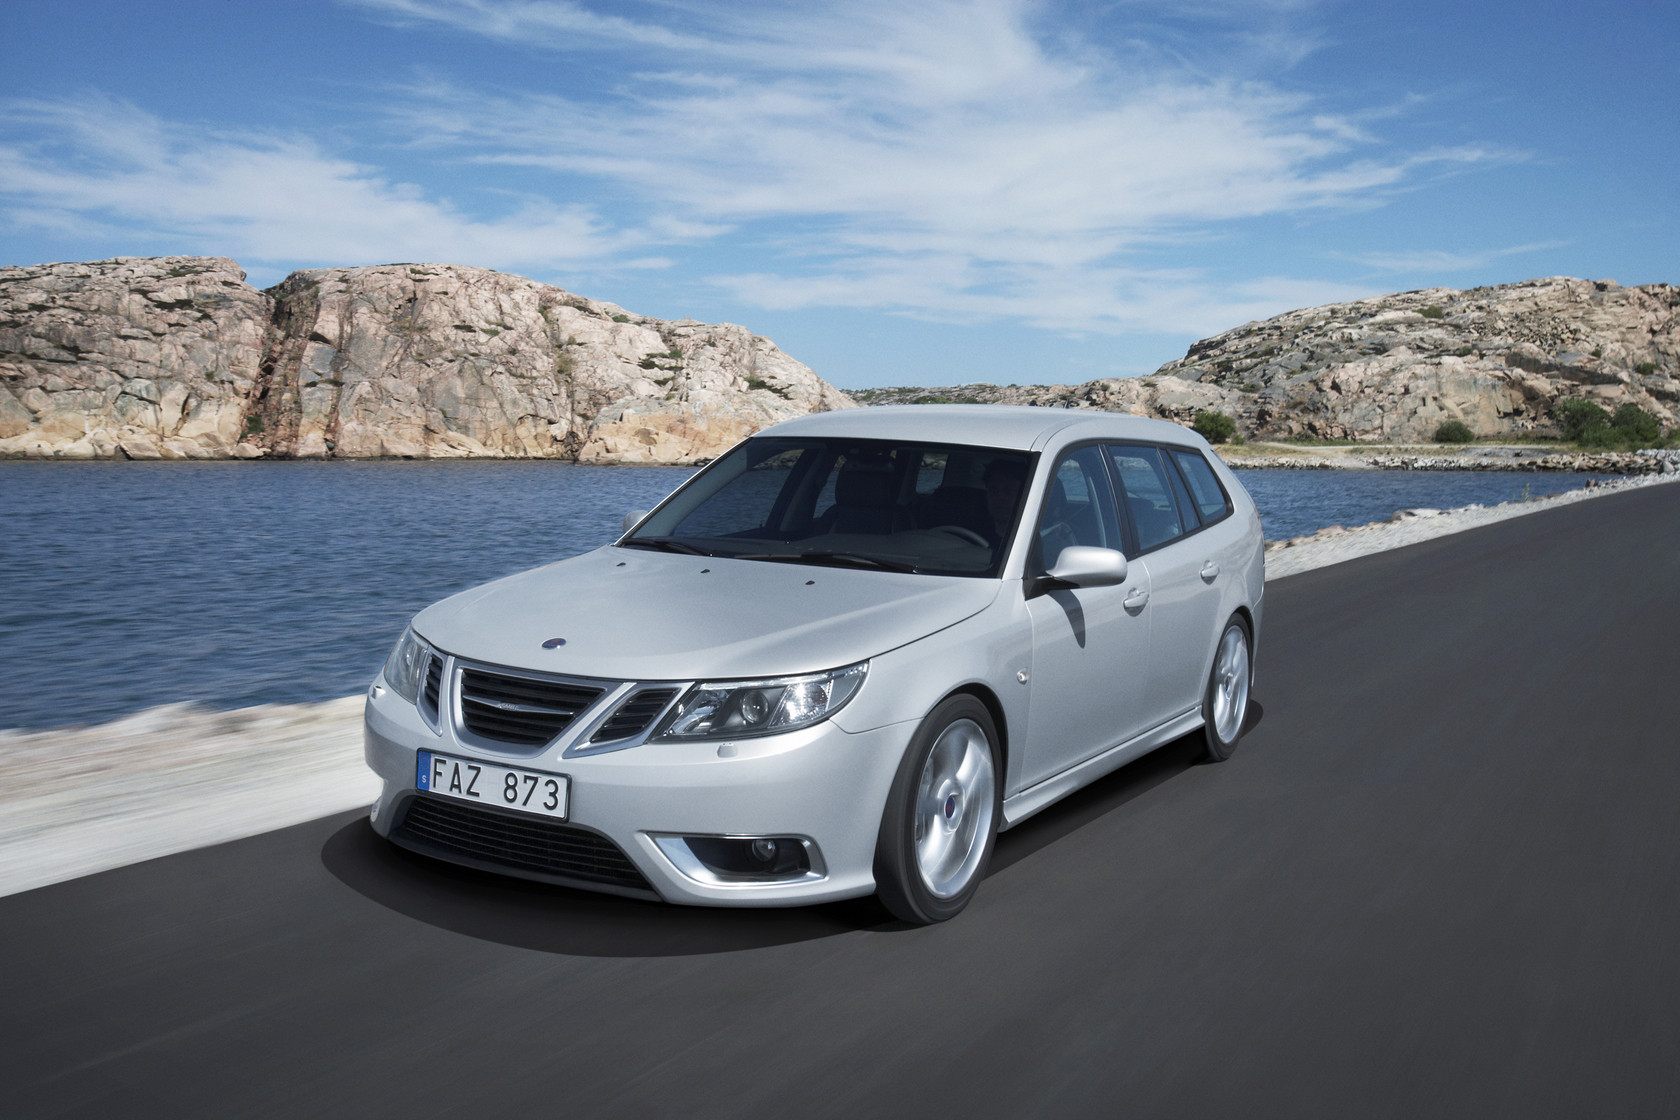 Saab 9-3 Break Auto Wallpapers GroenLicht.be